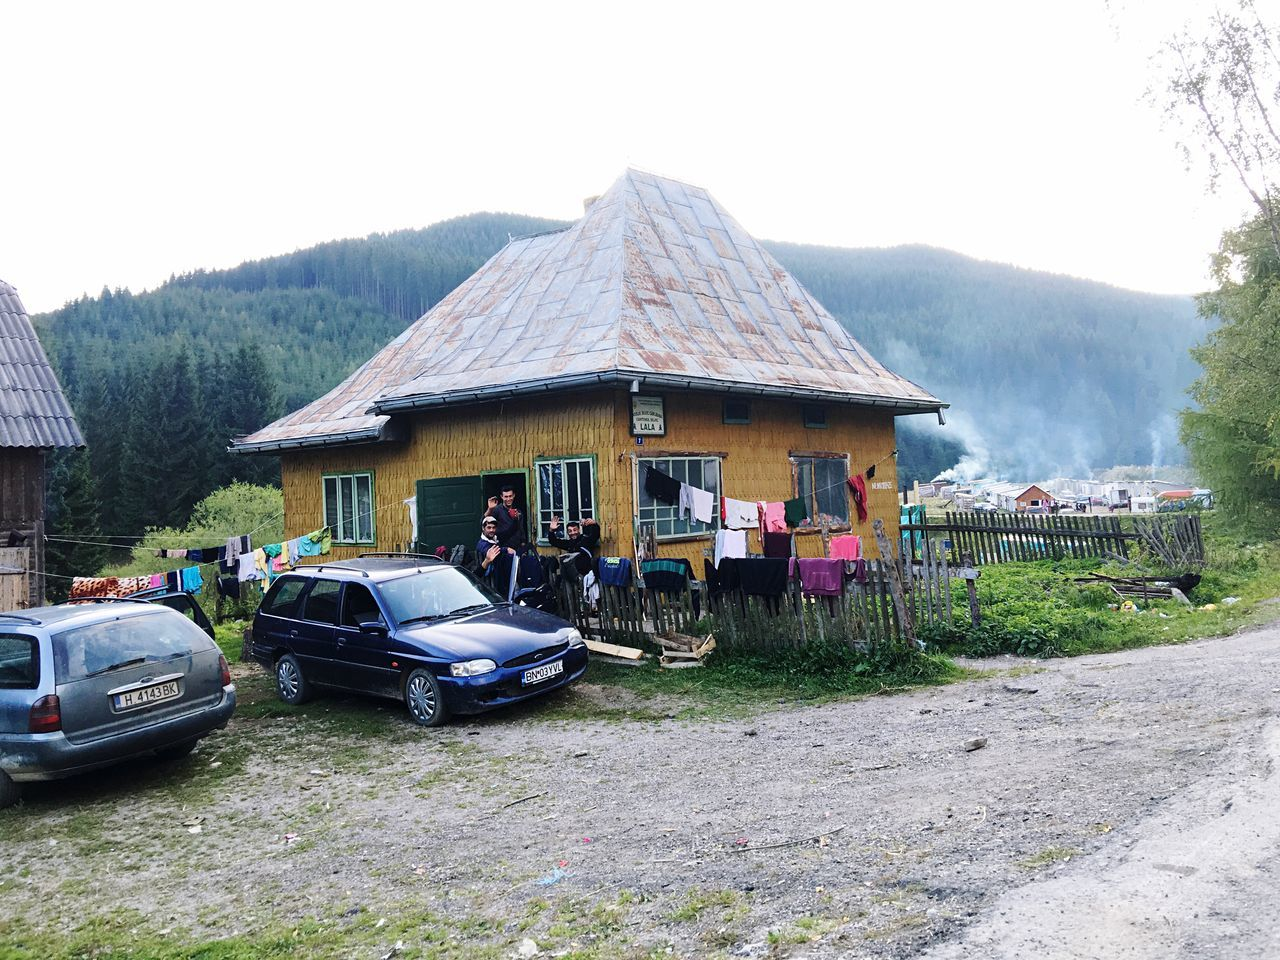 Romania Architecture Built Structure Building Exterior House Mountain Transportation Residential Structure Clear Sky Day Outdoors Mountain Range Person Green Residential District Town Village Life Pepole Village Country Life Countryside Country Living Solitude People And Places Gipsy